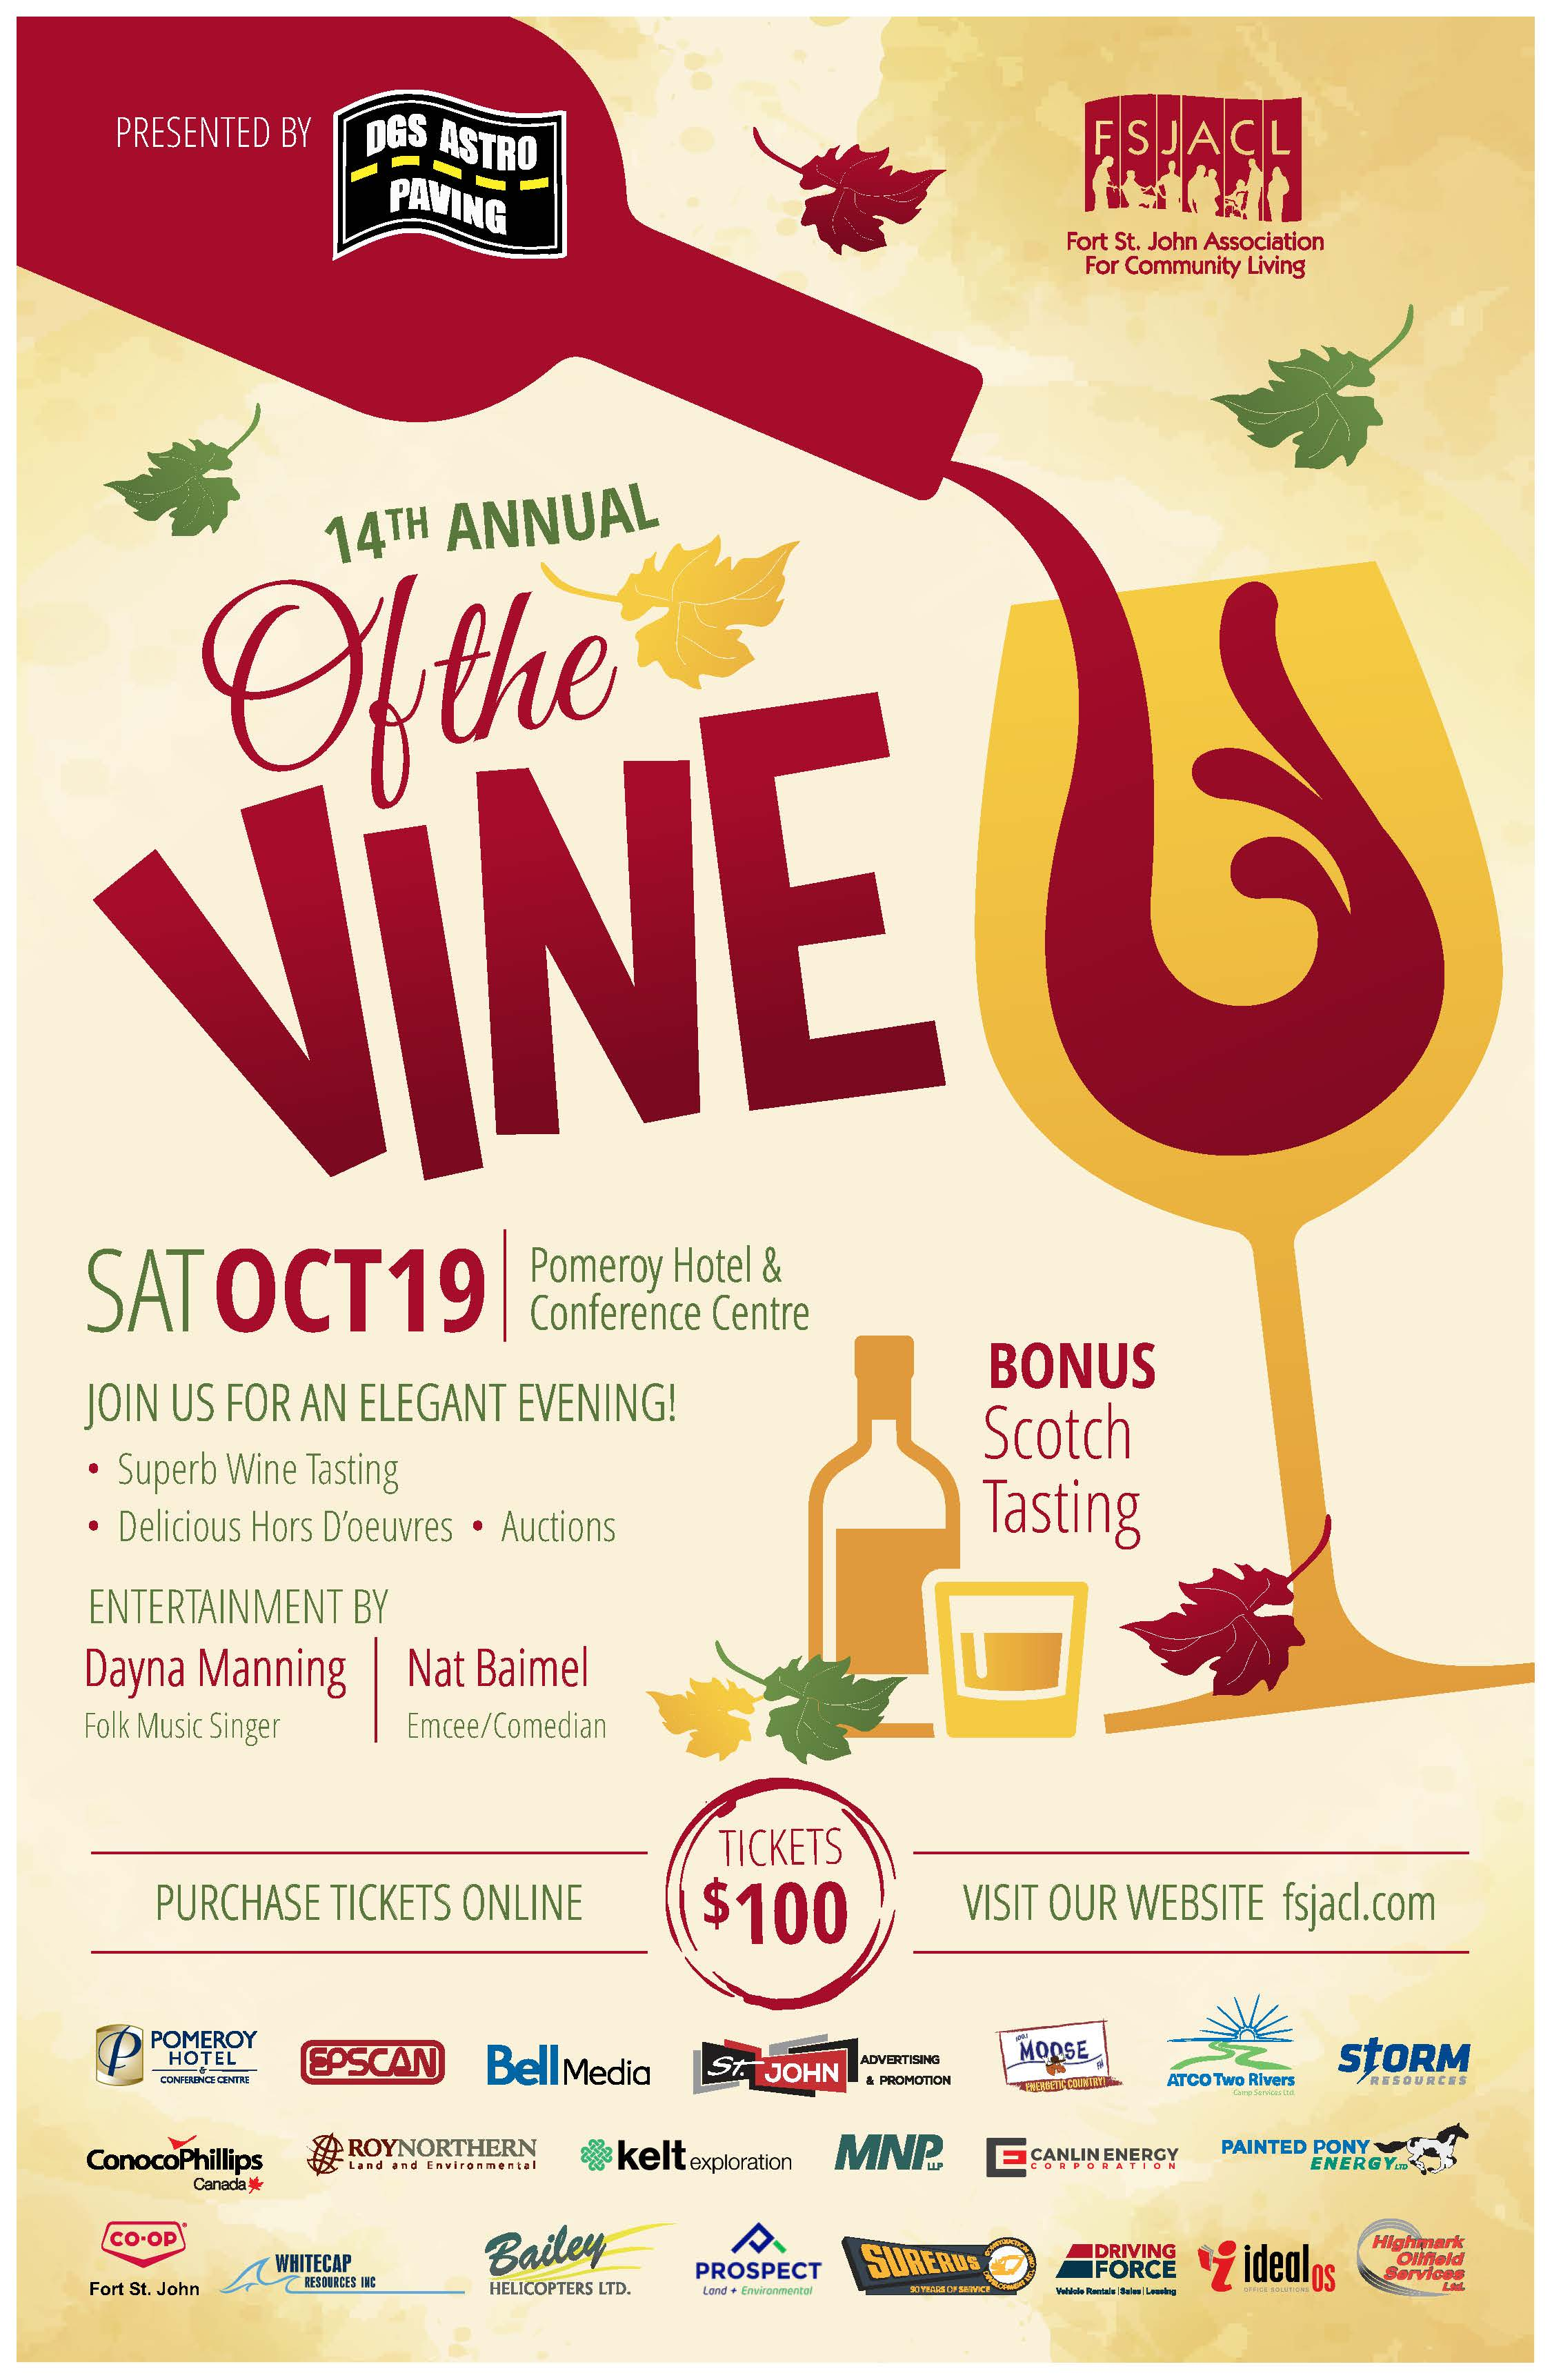 FSJACL Of the Vine 2019 11x17 Poster